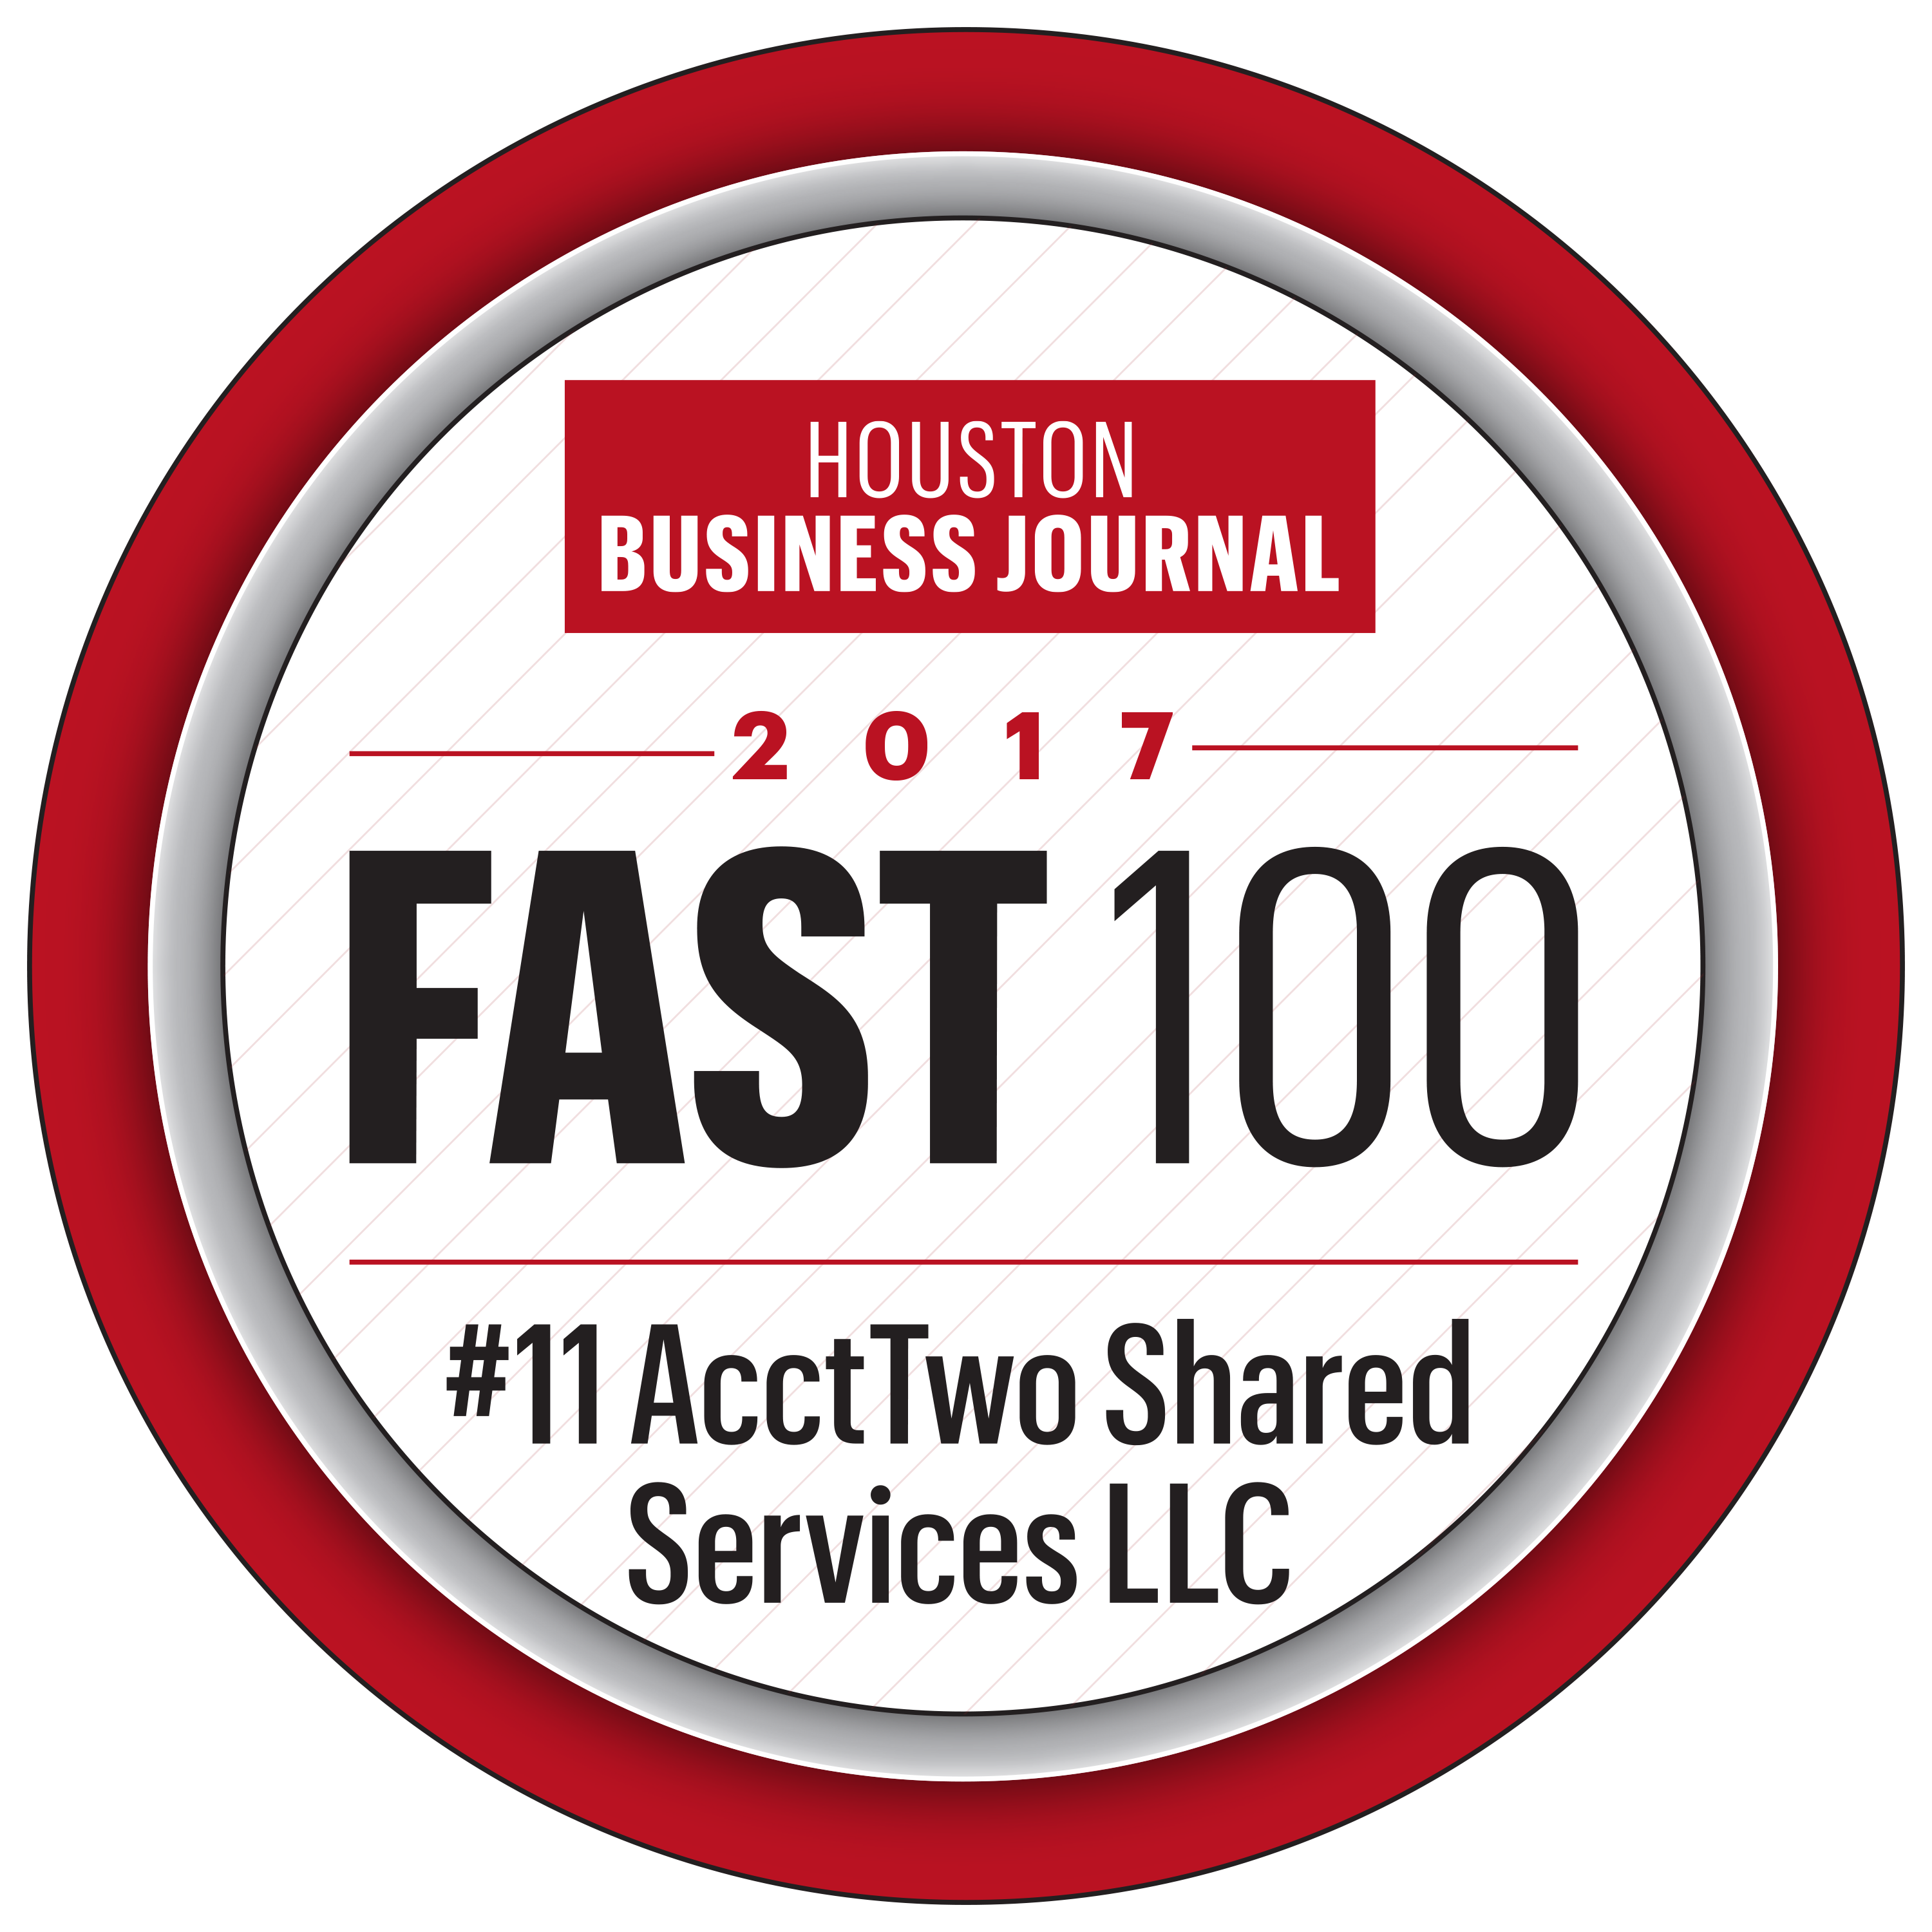 AcctTwo Named to Houston Business Journal's Fast 100 List 2017